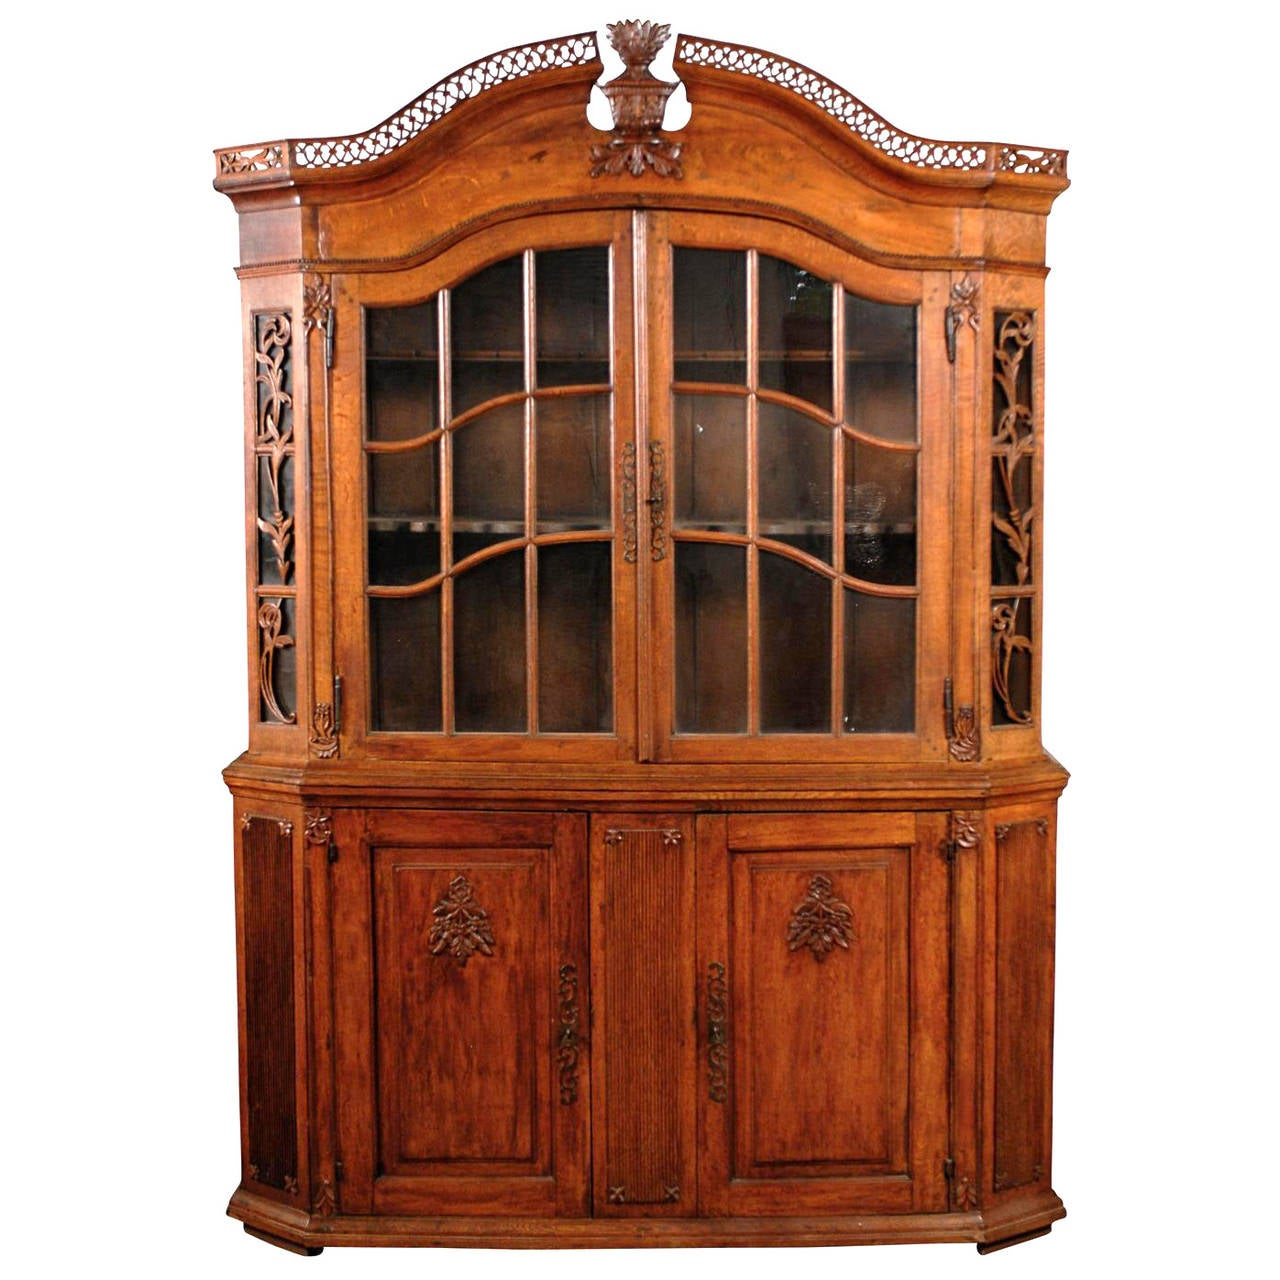 18th Century-19th Century Dutch Vitrine